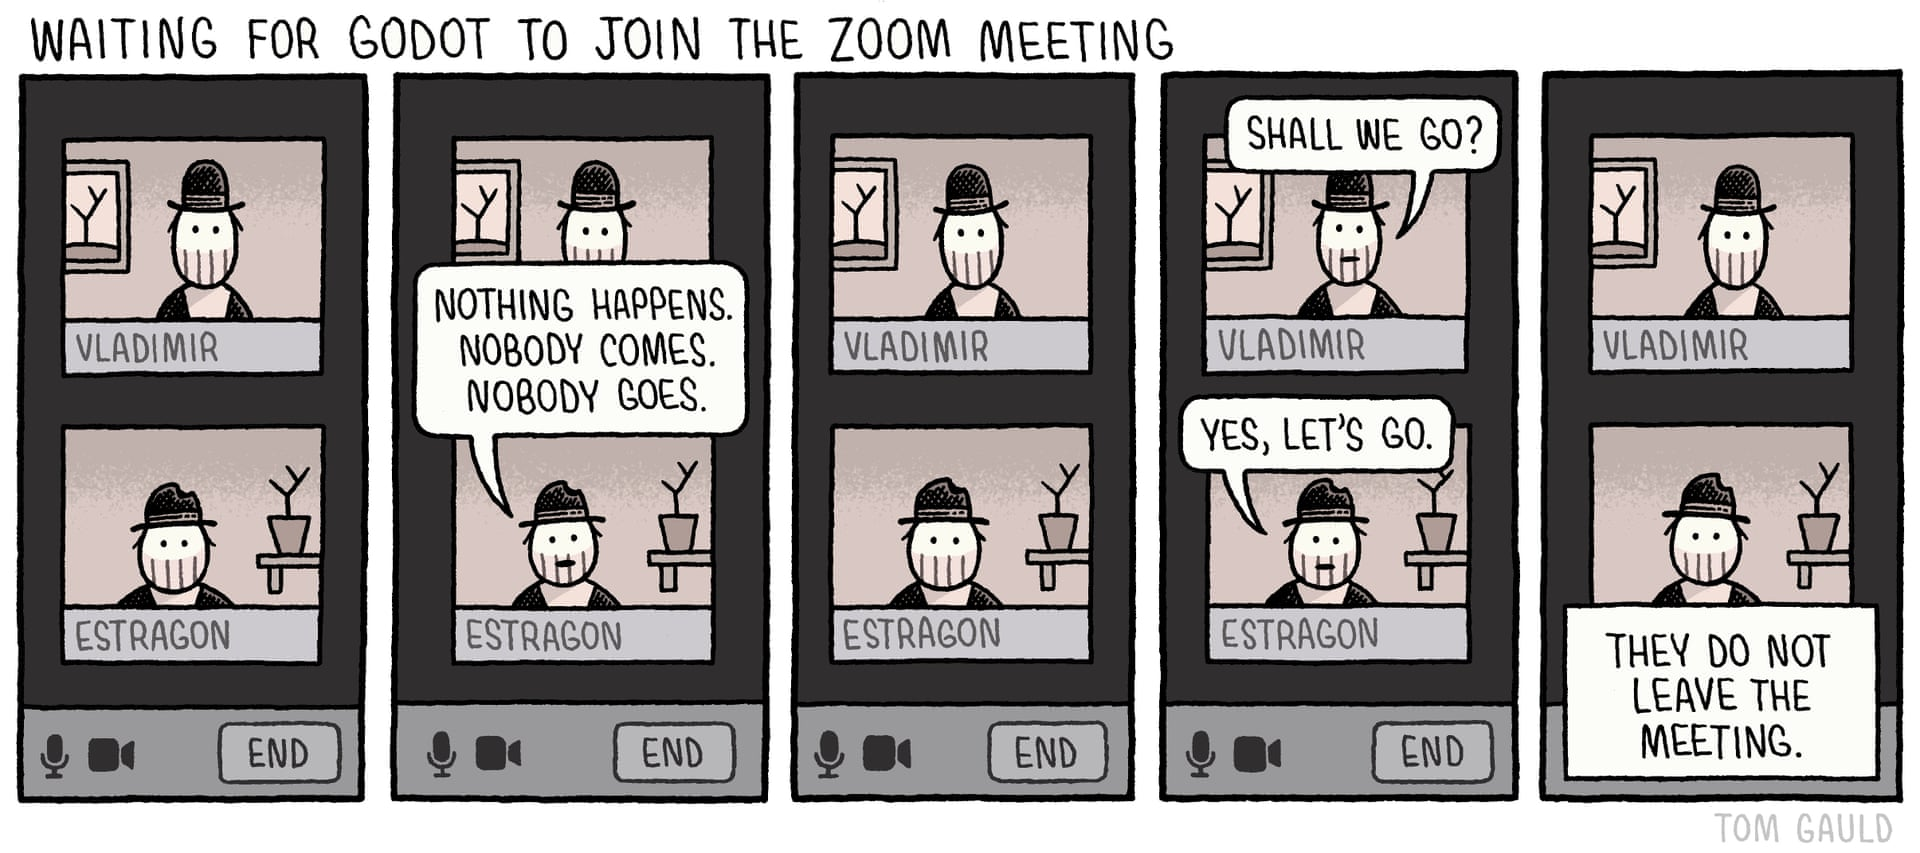 Waiting for Godot to join the zoom meeting, cartoon by Tom Gauld